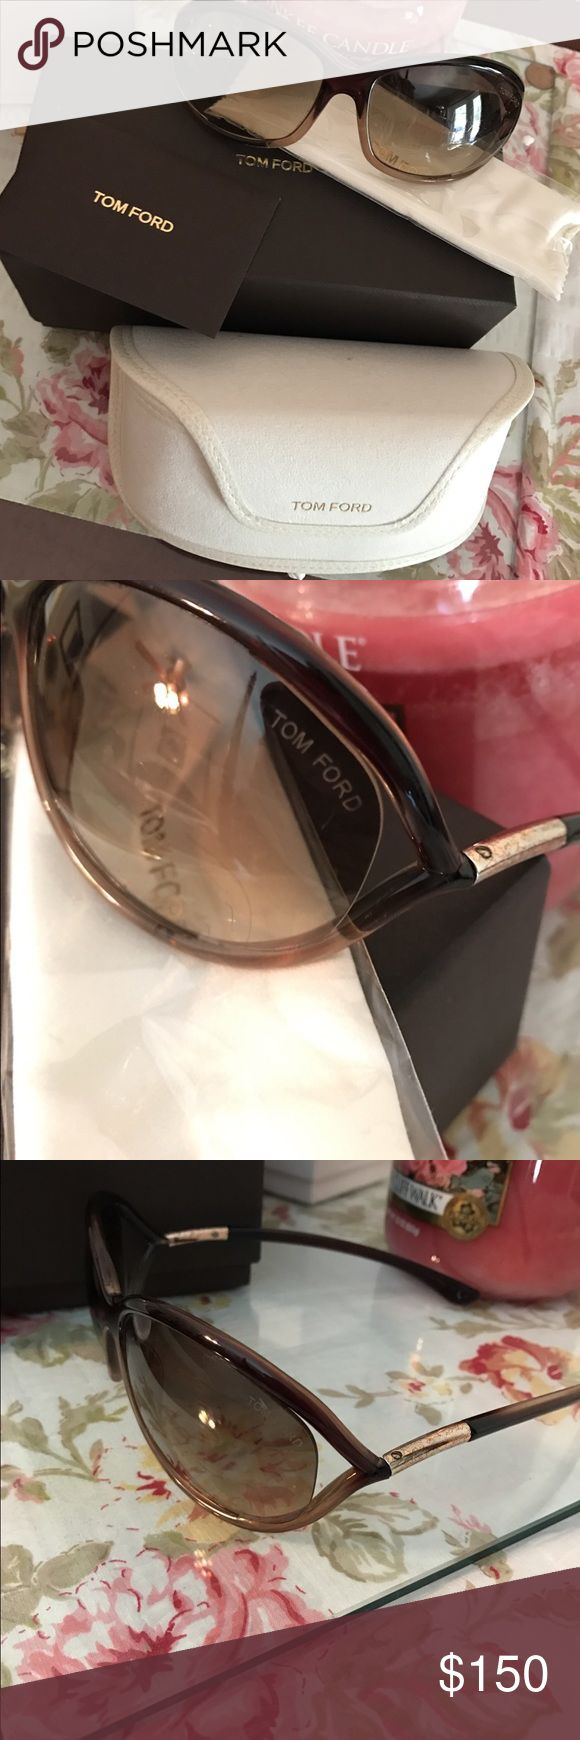 Tom Ford Jennifer Sunglasses Authentic Tom Ford sunglasses. Comes with glasses, glasses case, cleaning cloth, and original box. Tom Ford Accessories Glasses